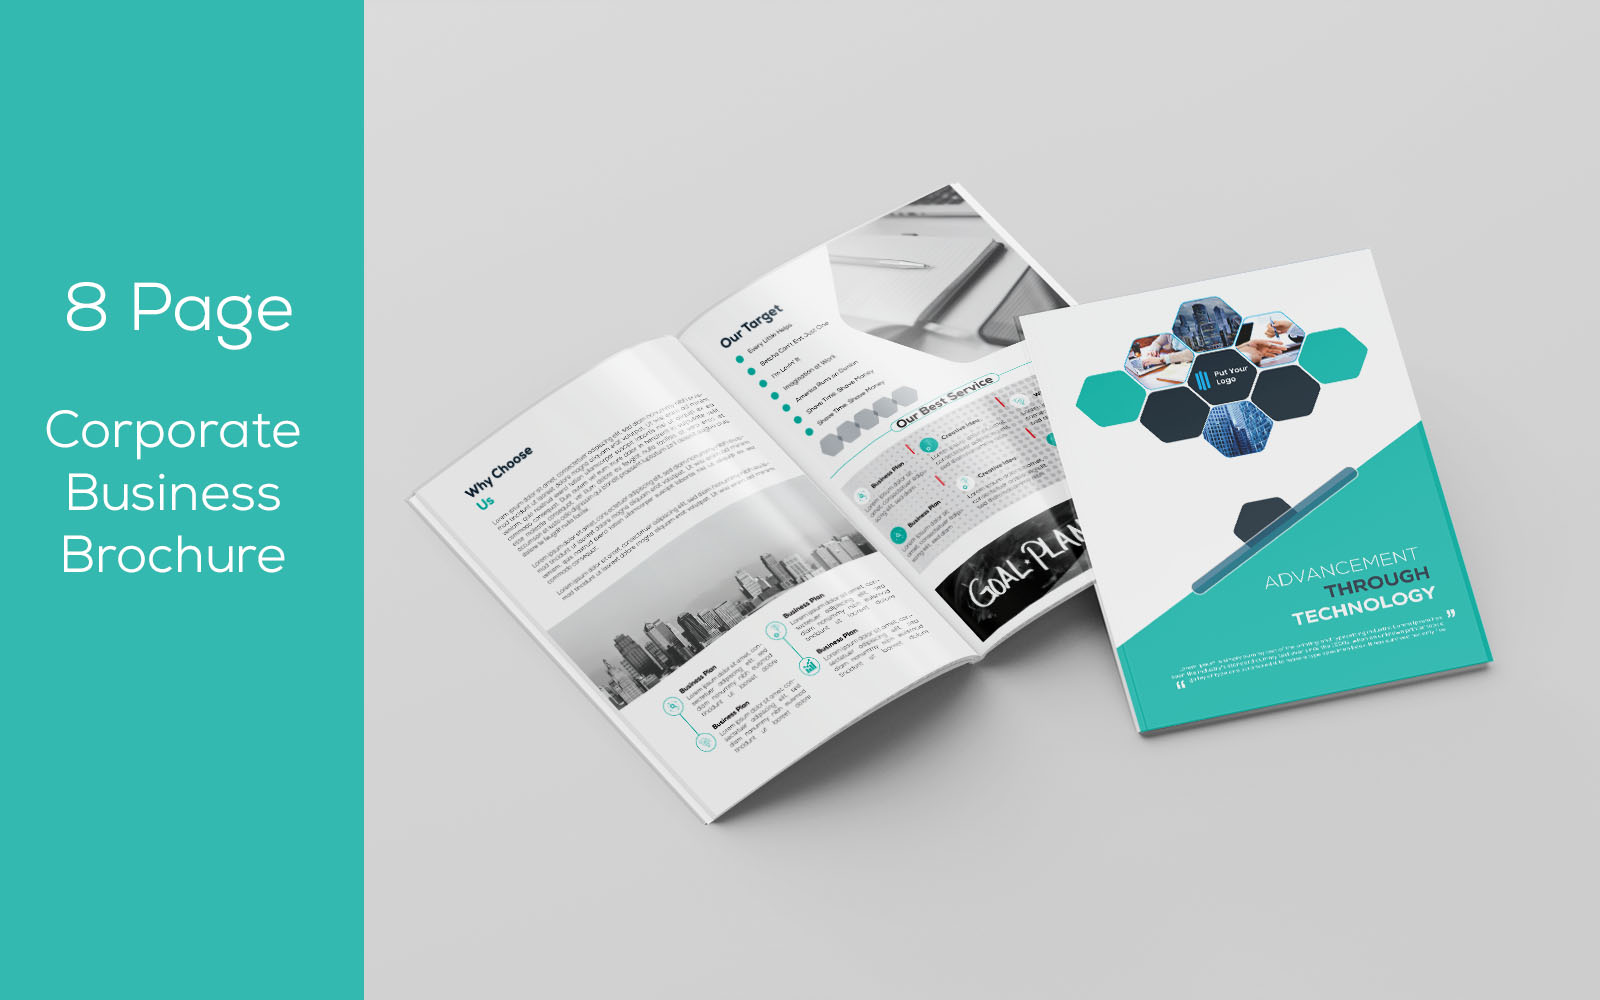 Business Brochure - 8 page Corporate Identity Template